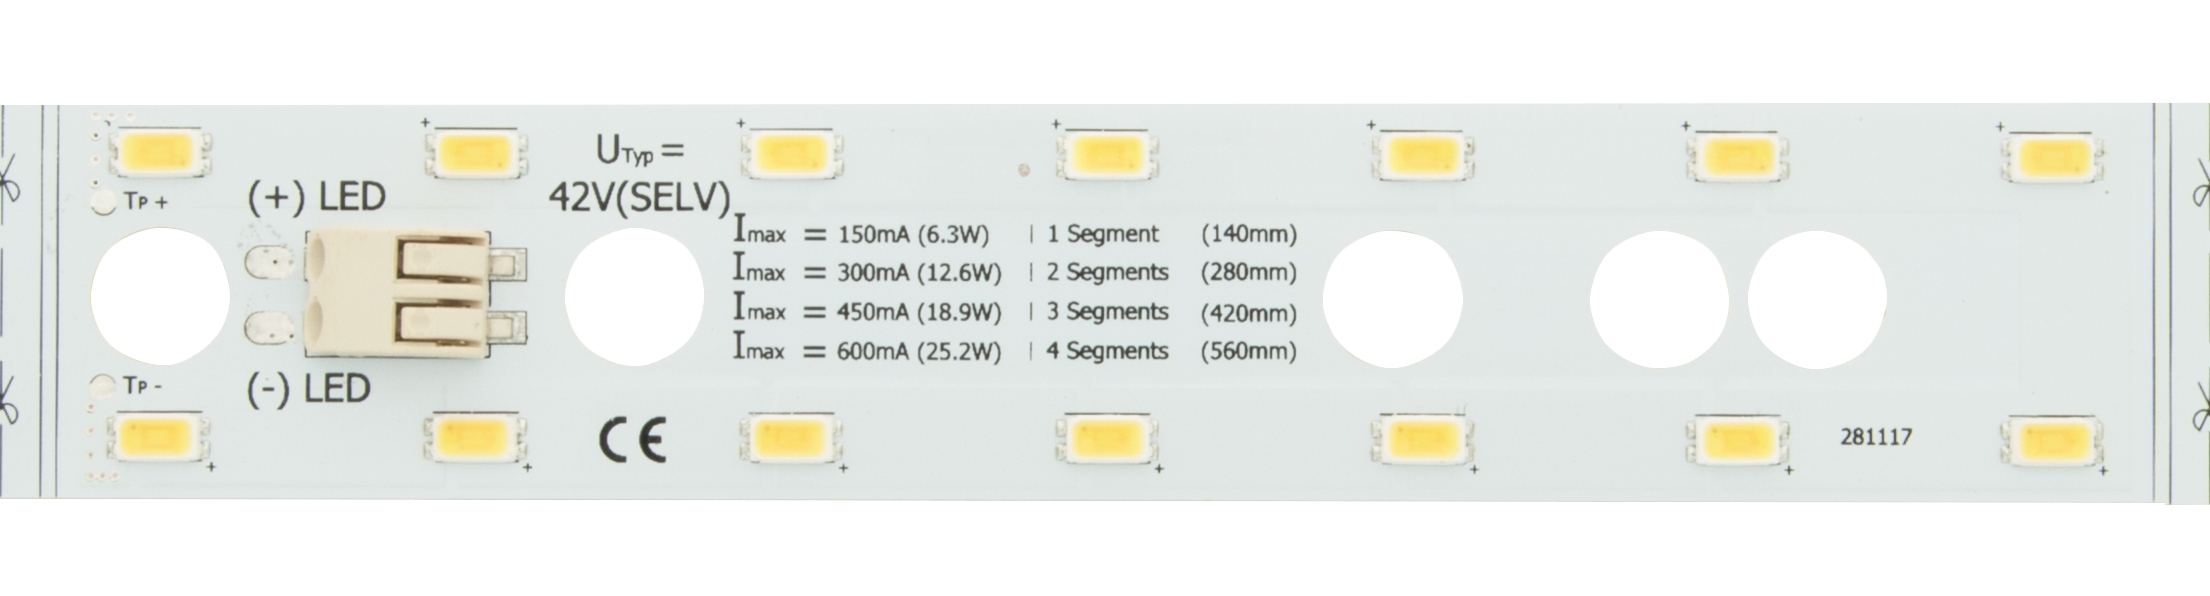 1 Stk LED Platinen Modul 25 WW (Warm Weiss) - IP20, CRI/RA 80+ LIPM002830